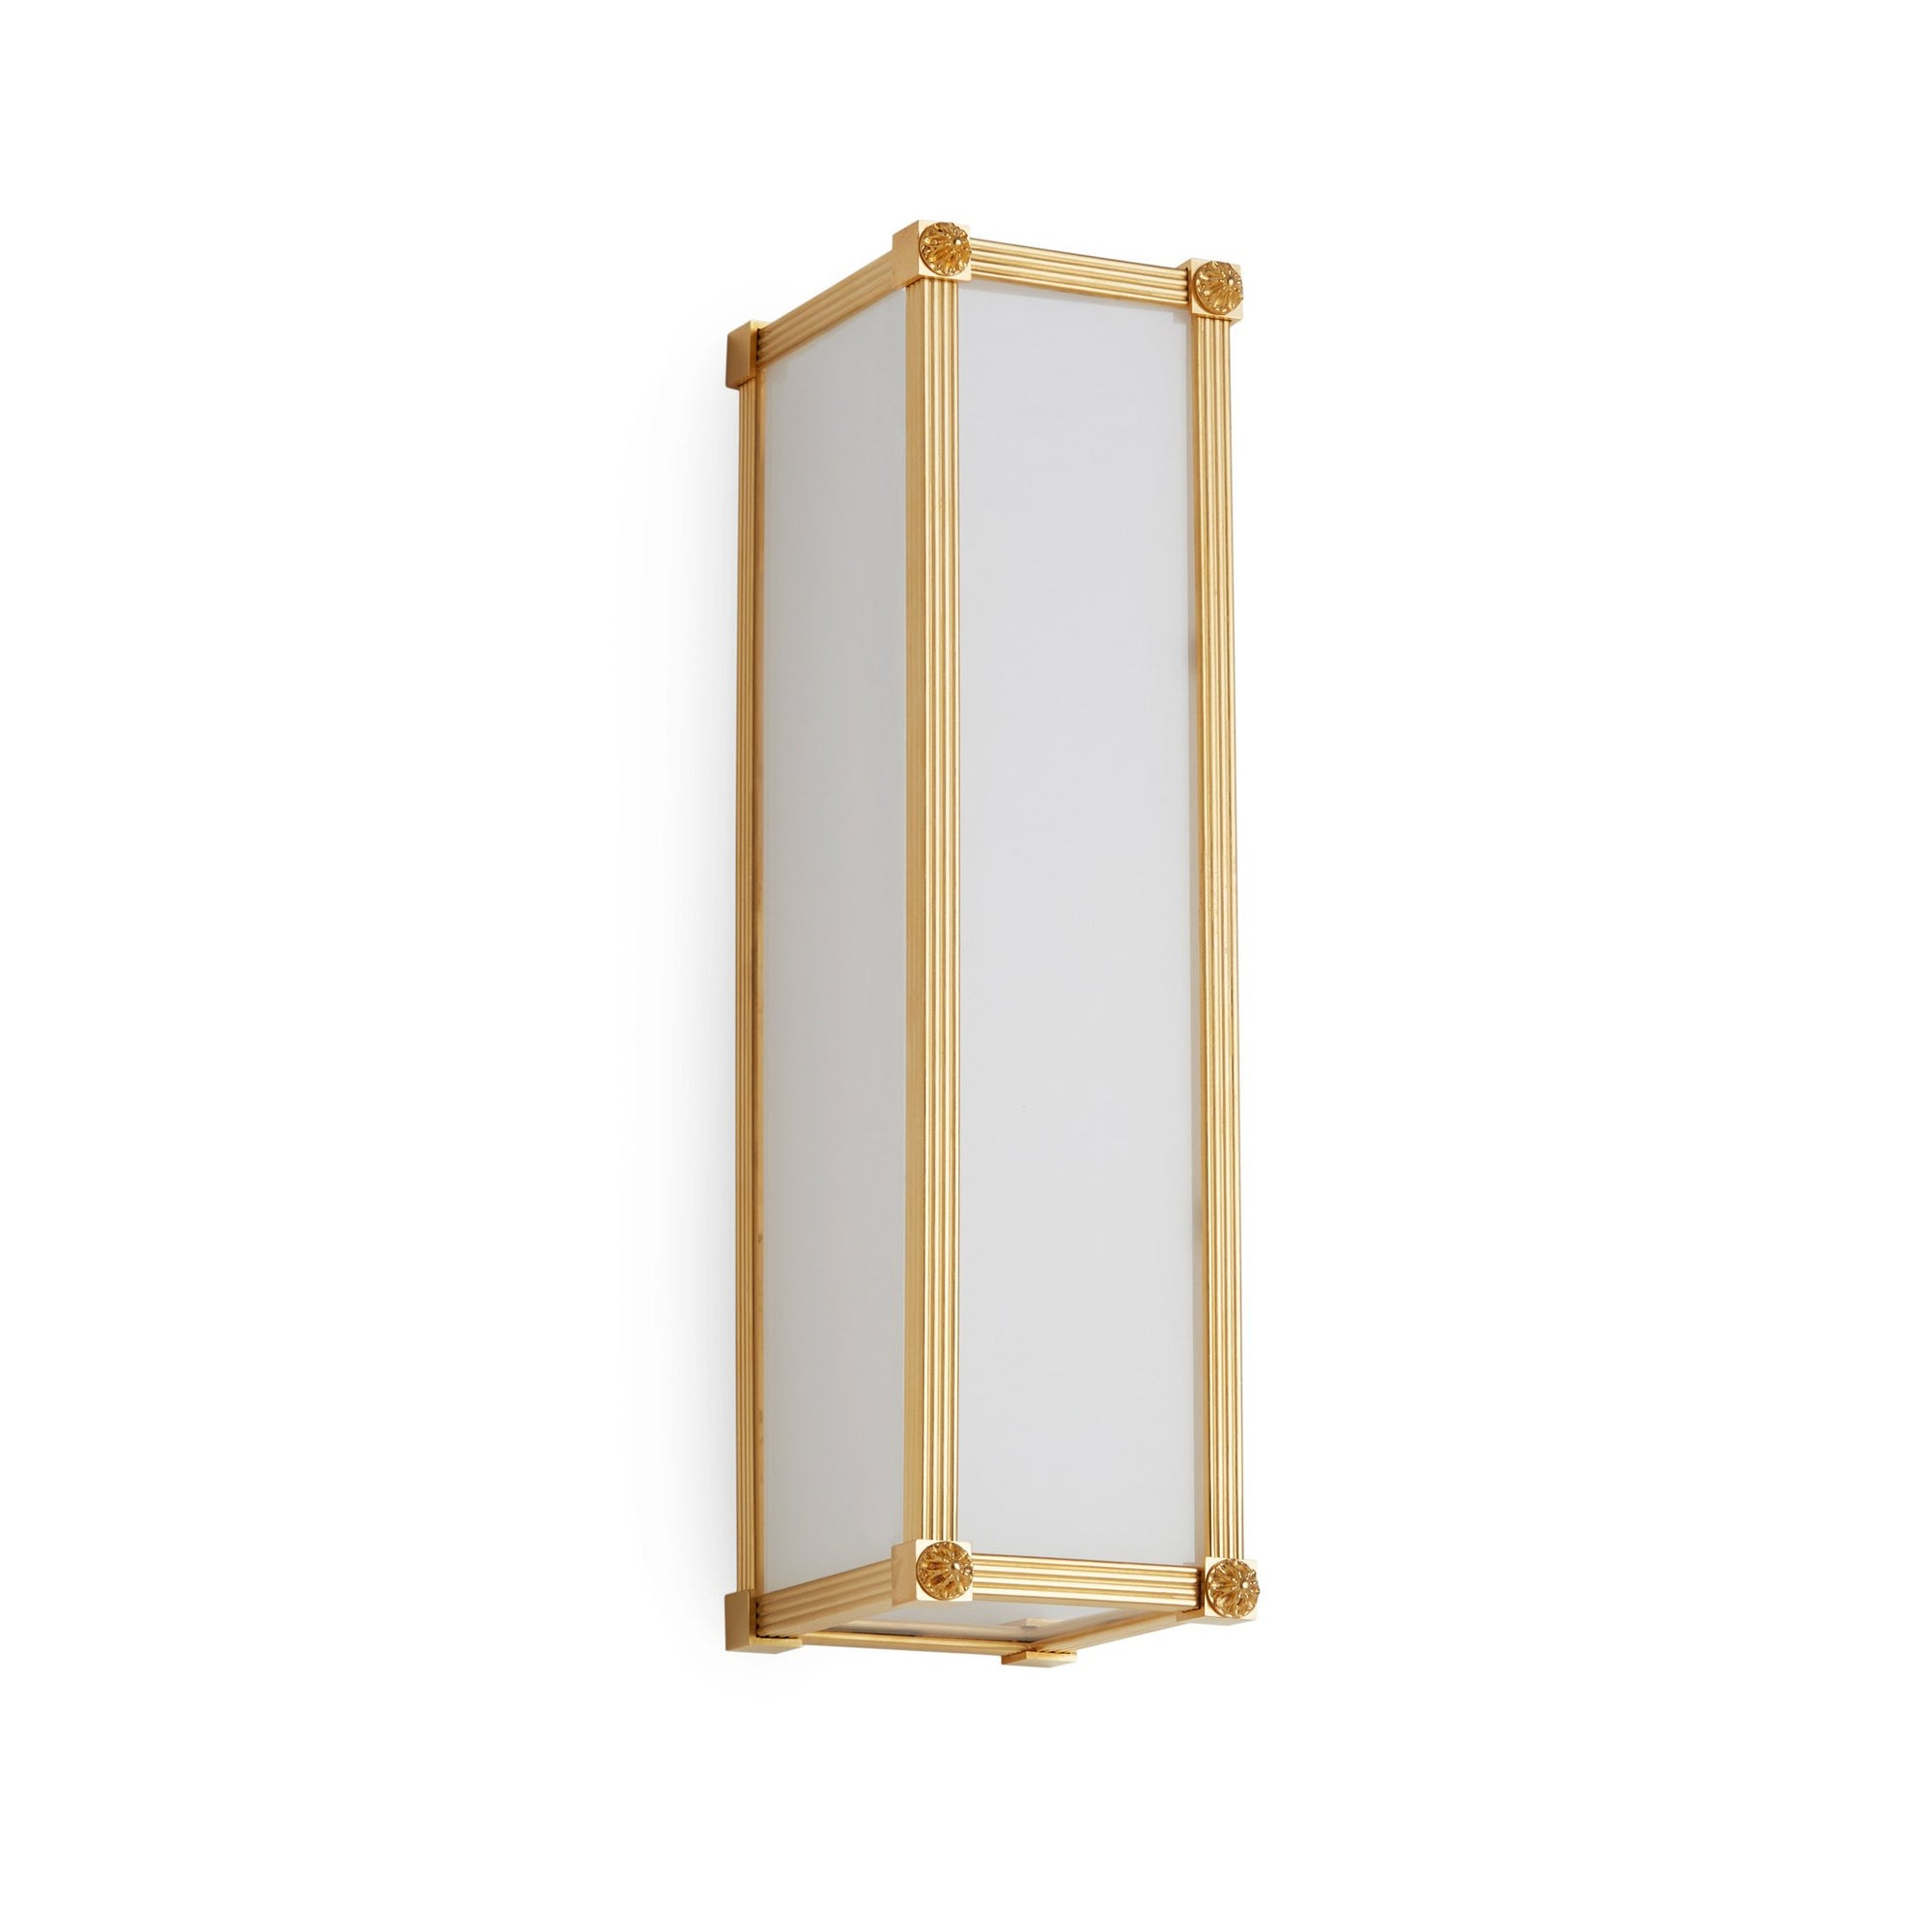 7107FG-16-VERT-GP Sherle Wagner International Reeded with Rosette Frosted Glass Panel Light in Burnished Gold metal finish